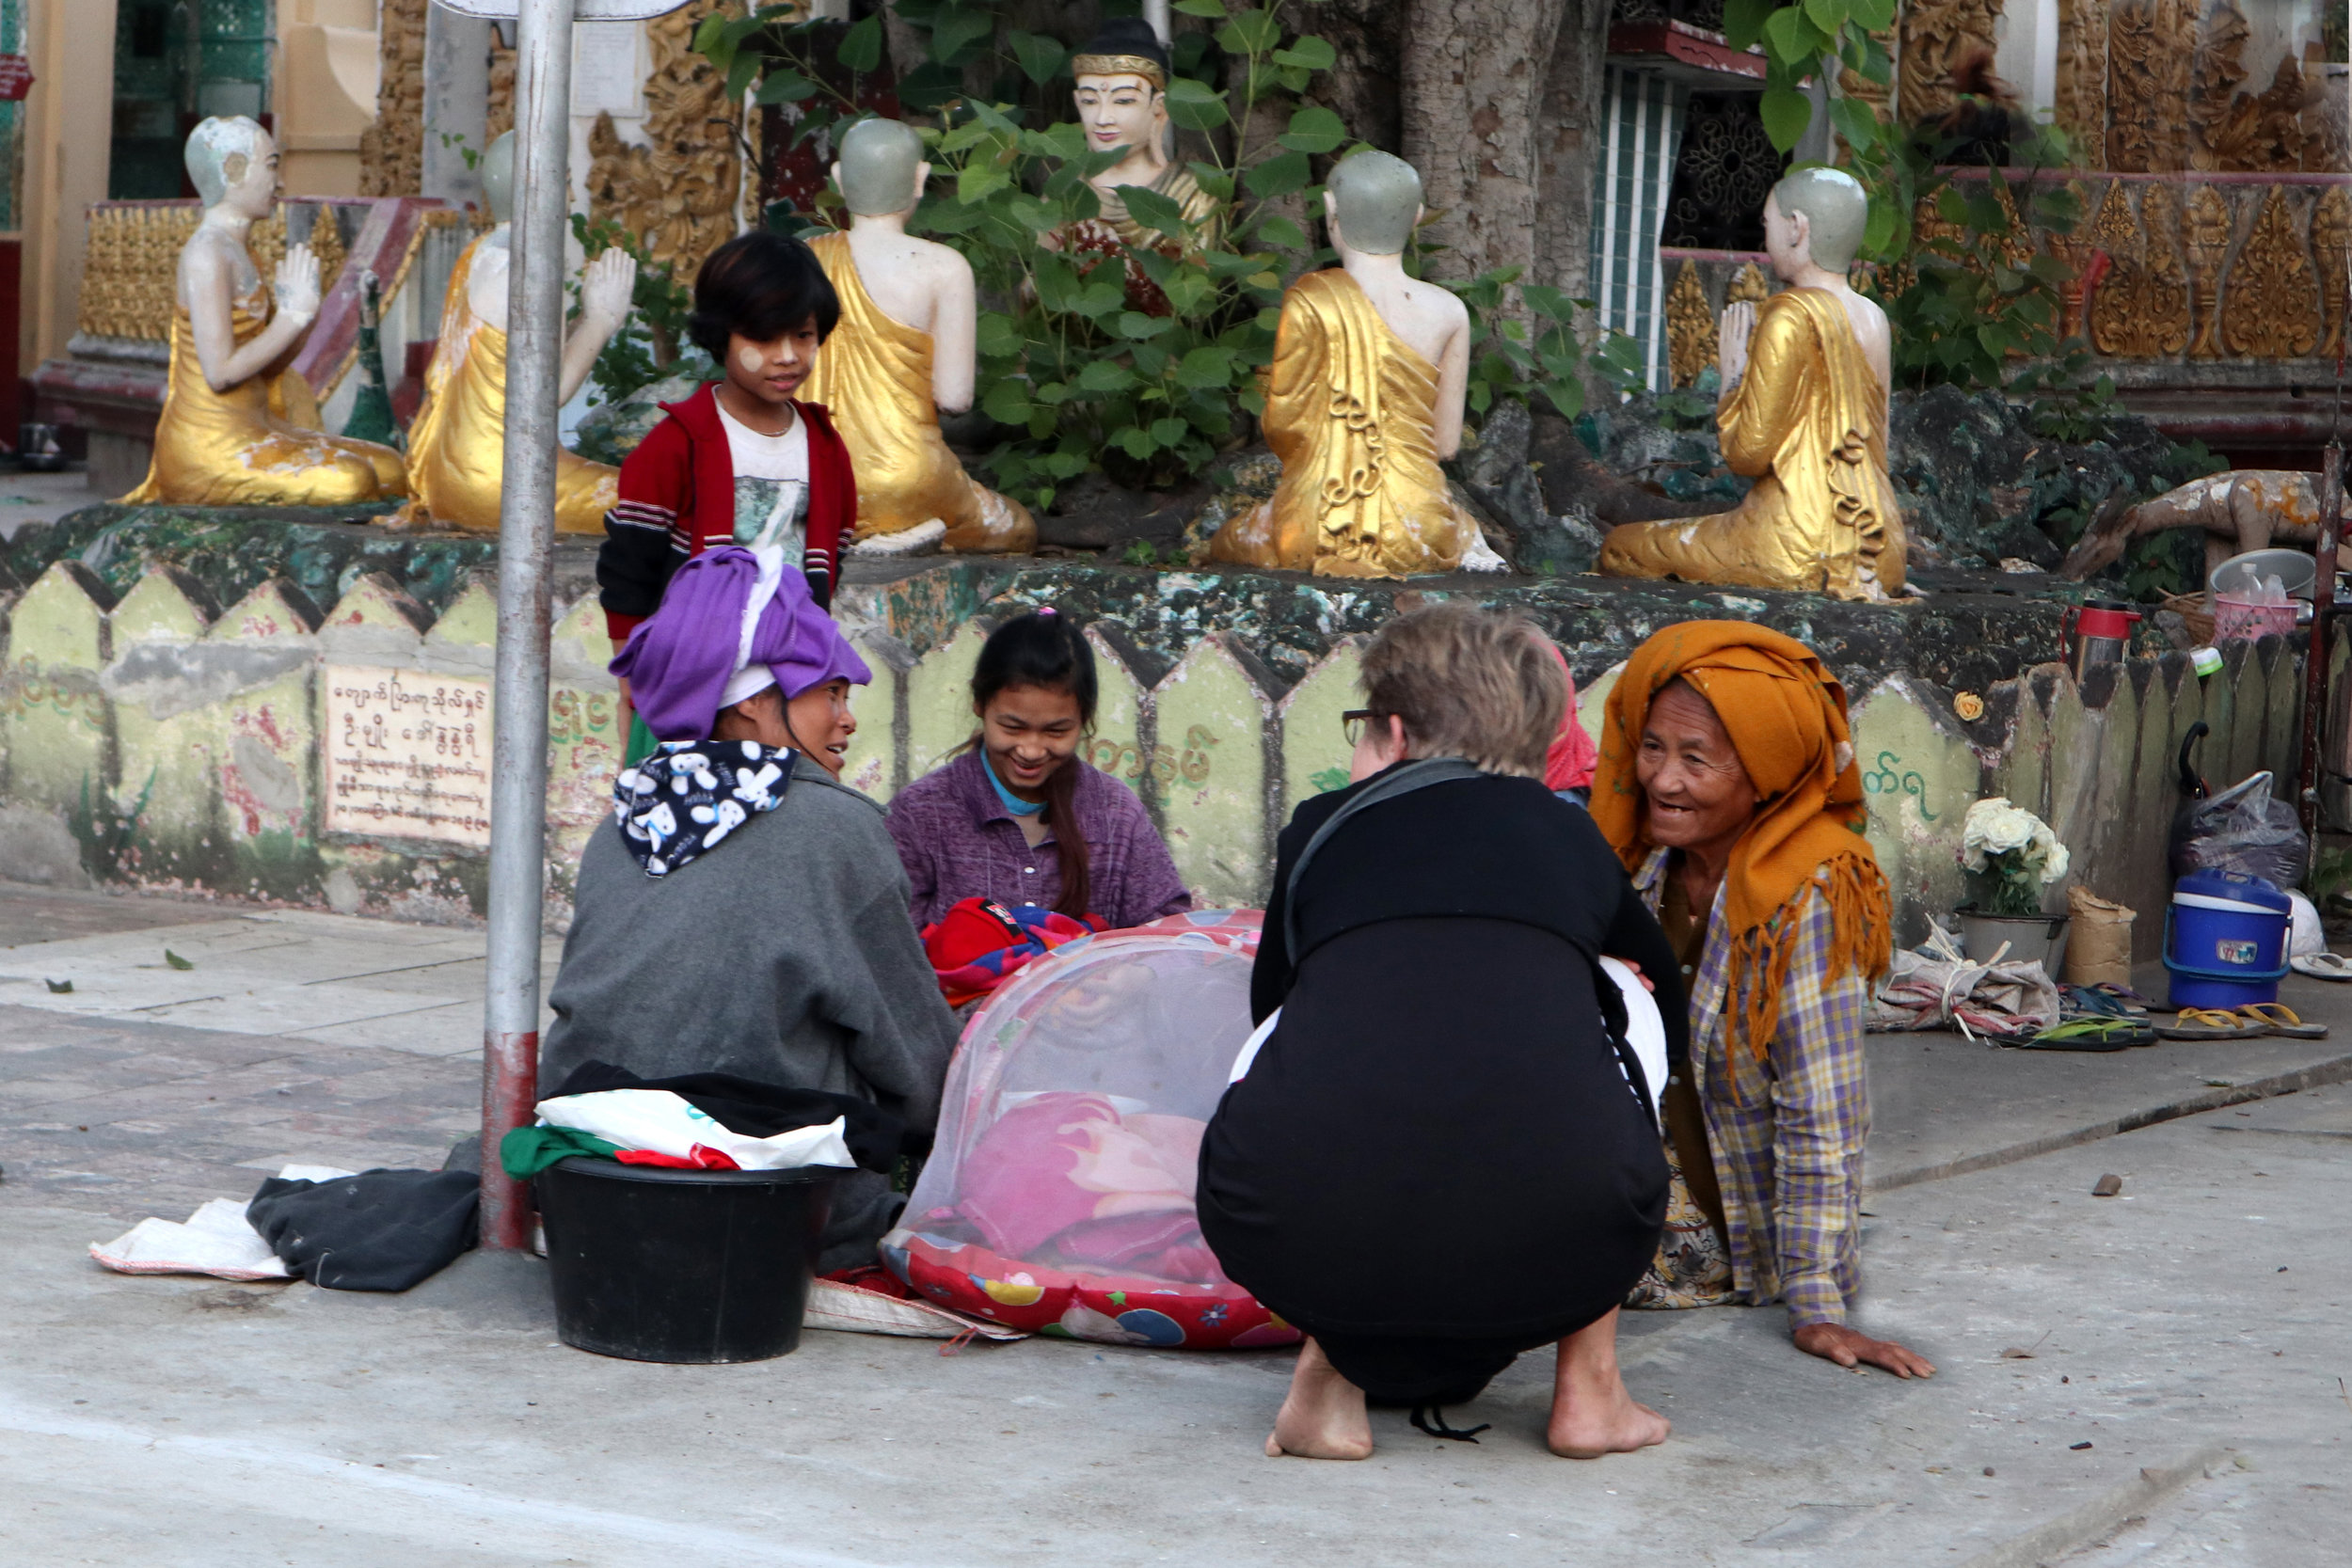 These Mandalay women -four generations, including newborn twins - appeared to be living at the temple. They could have benefitted from a bit of stupa gold.